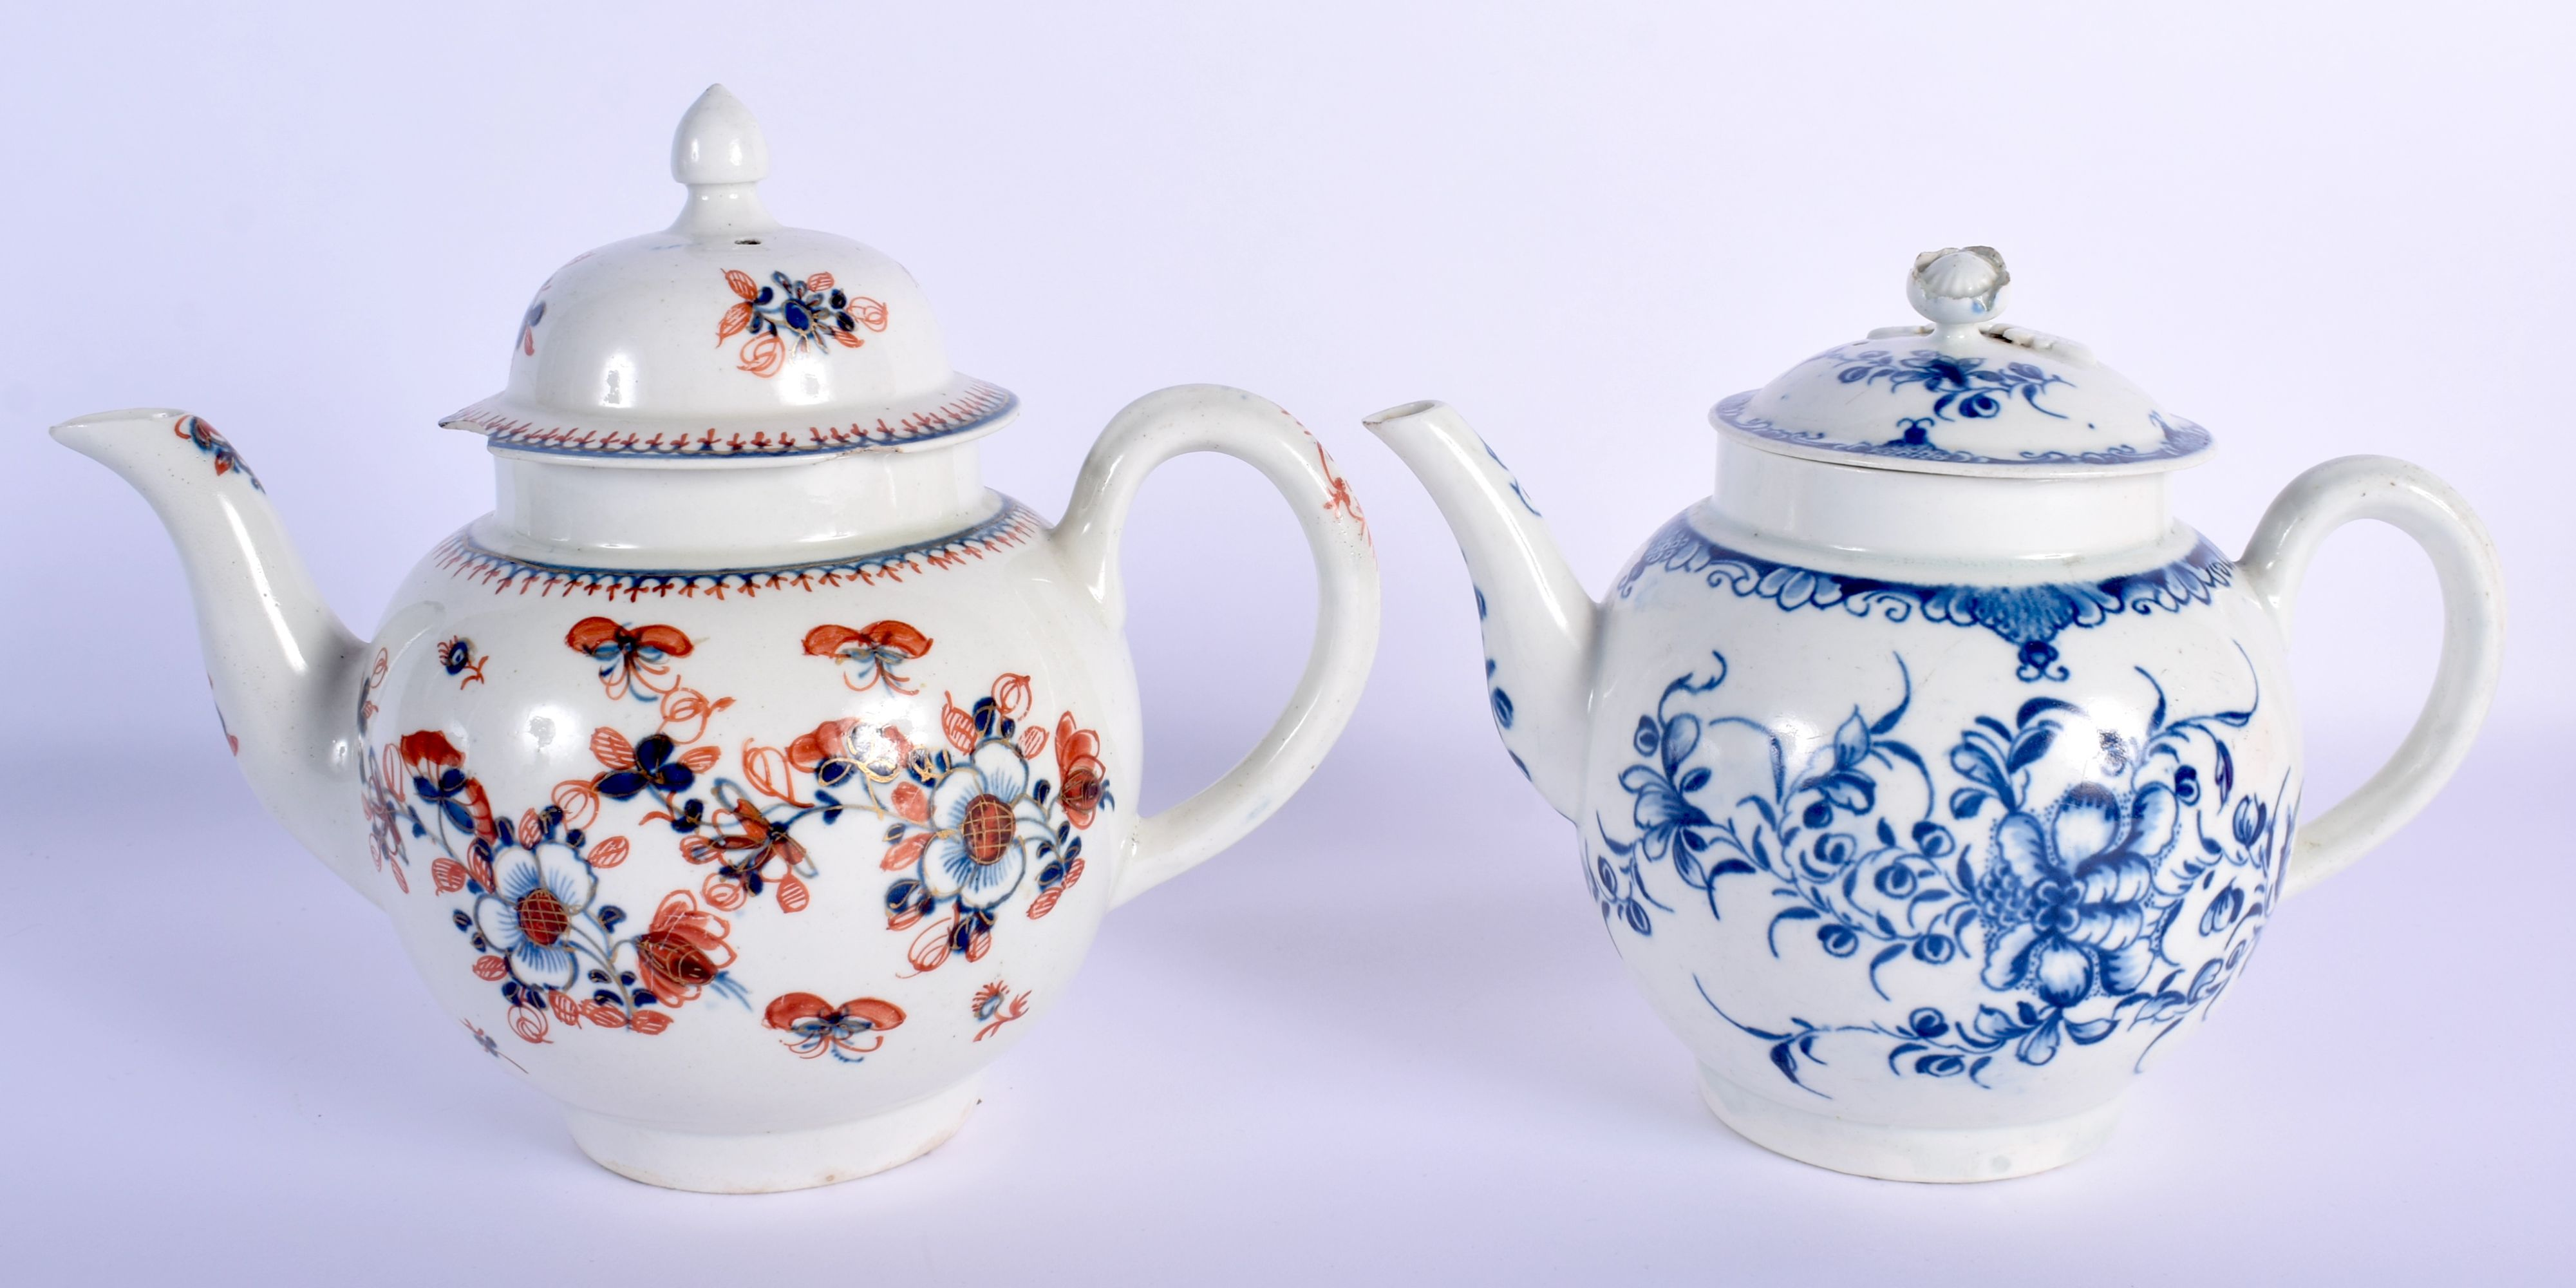 AN 18TH CENTURY WORCESTER MANSFIELD TEAPOT AND COVER together with a Liverpool overglazed teapot and